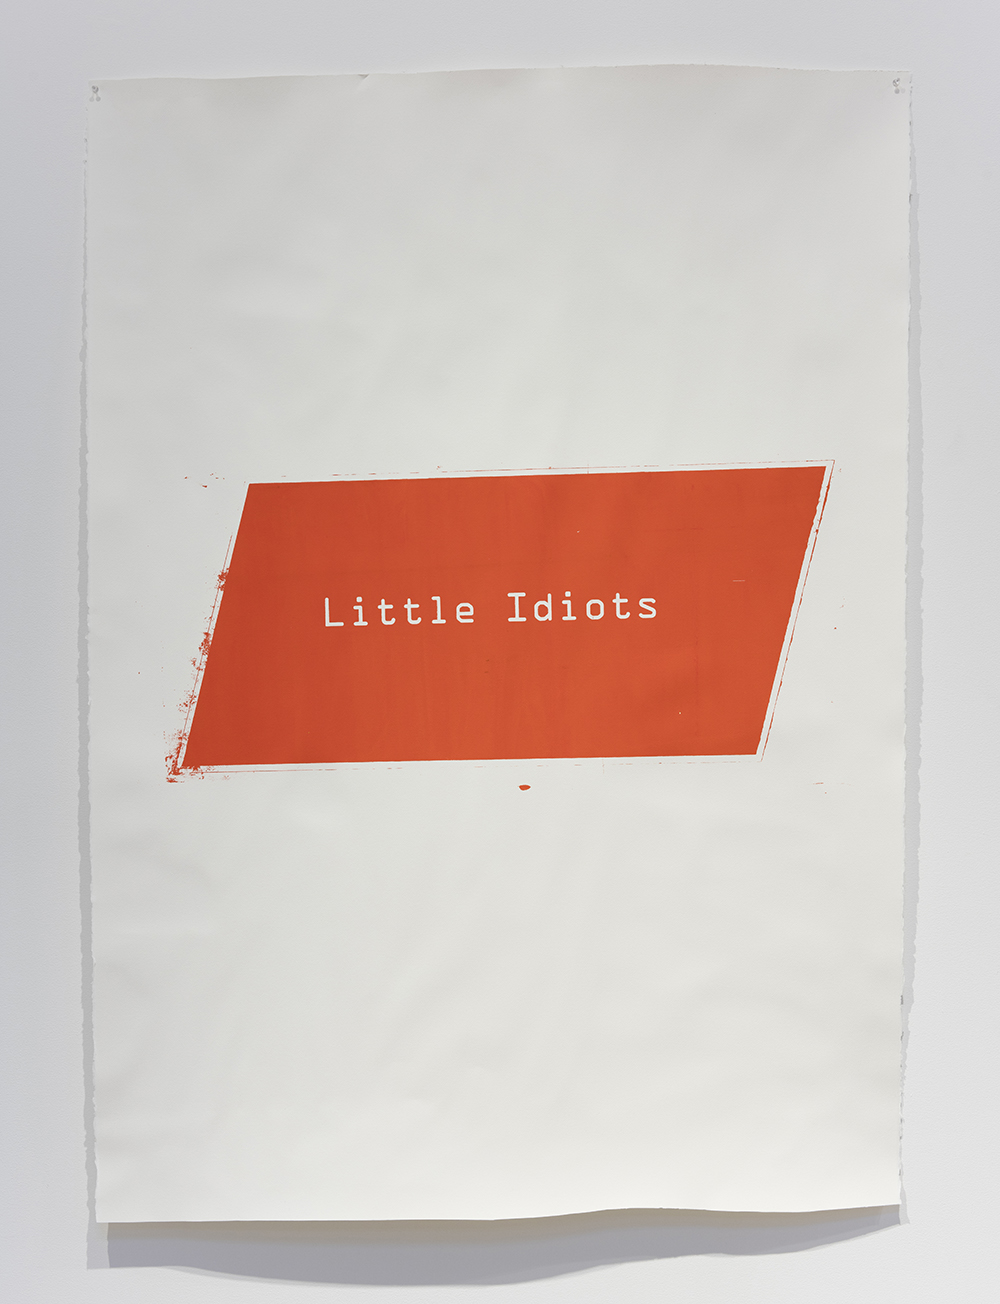 Kerry Tribe and Edgar Bryan. <em>Little Idiots</em>, 2017. Acrylic screen print on watercolor paper, 63 x 45 inches